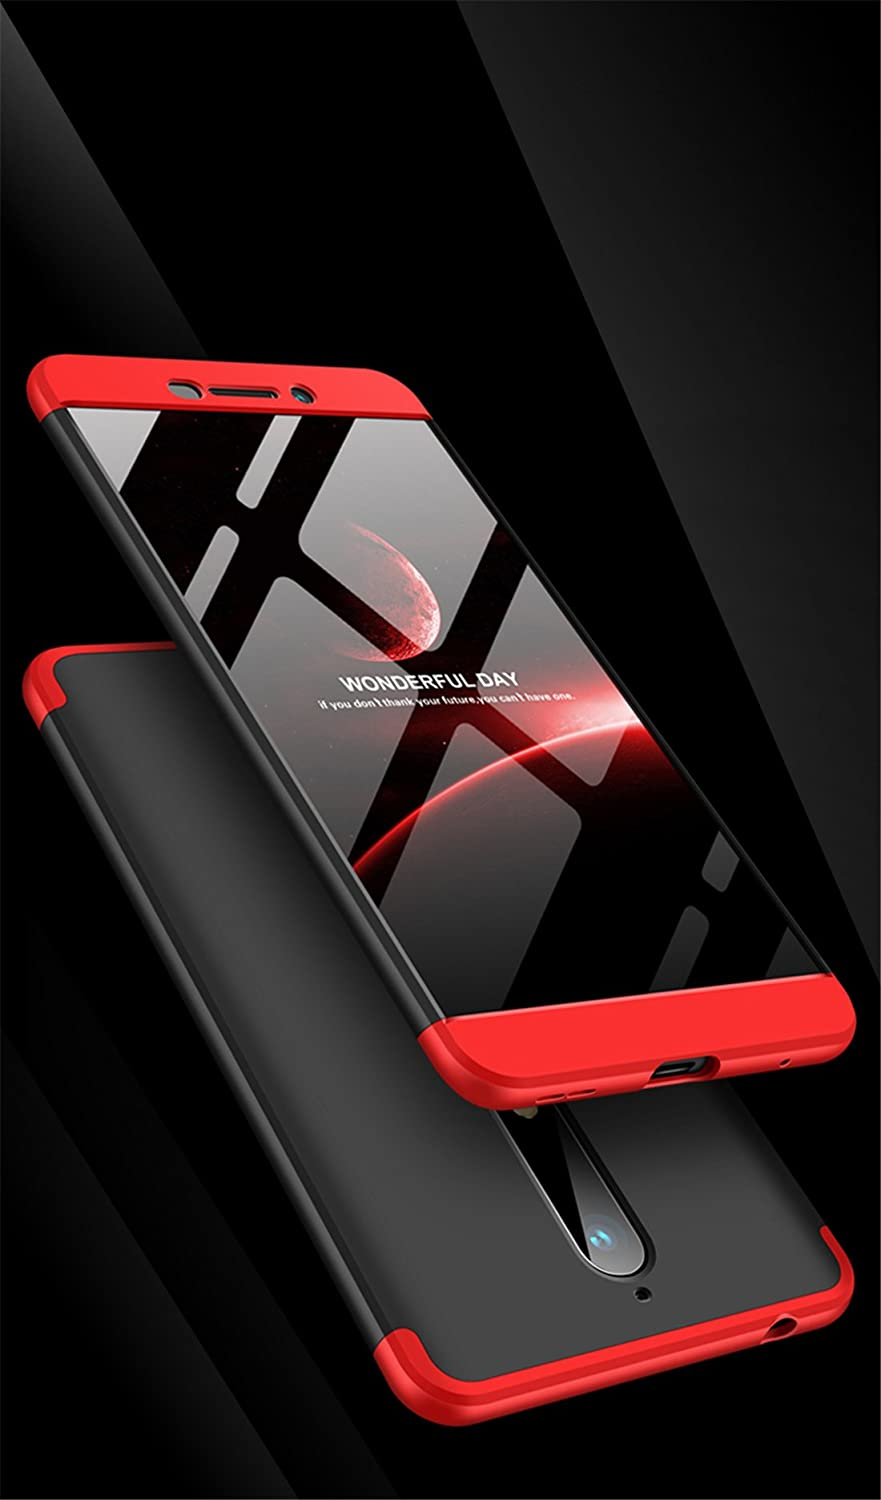 Nokia 8.1 Case Ultra Thin Shockproof Full Body Coverage Protection Hard Slim Case Coated Non Slip Matte Surface for Nokia 8.1 red//Black//red, Nokia 8.1